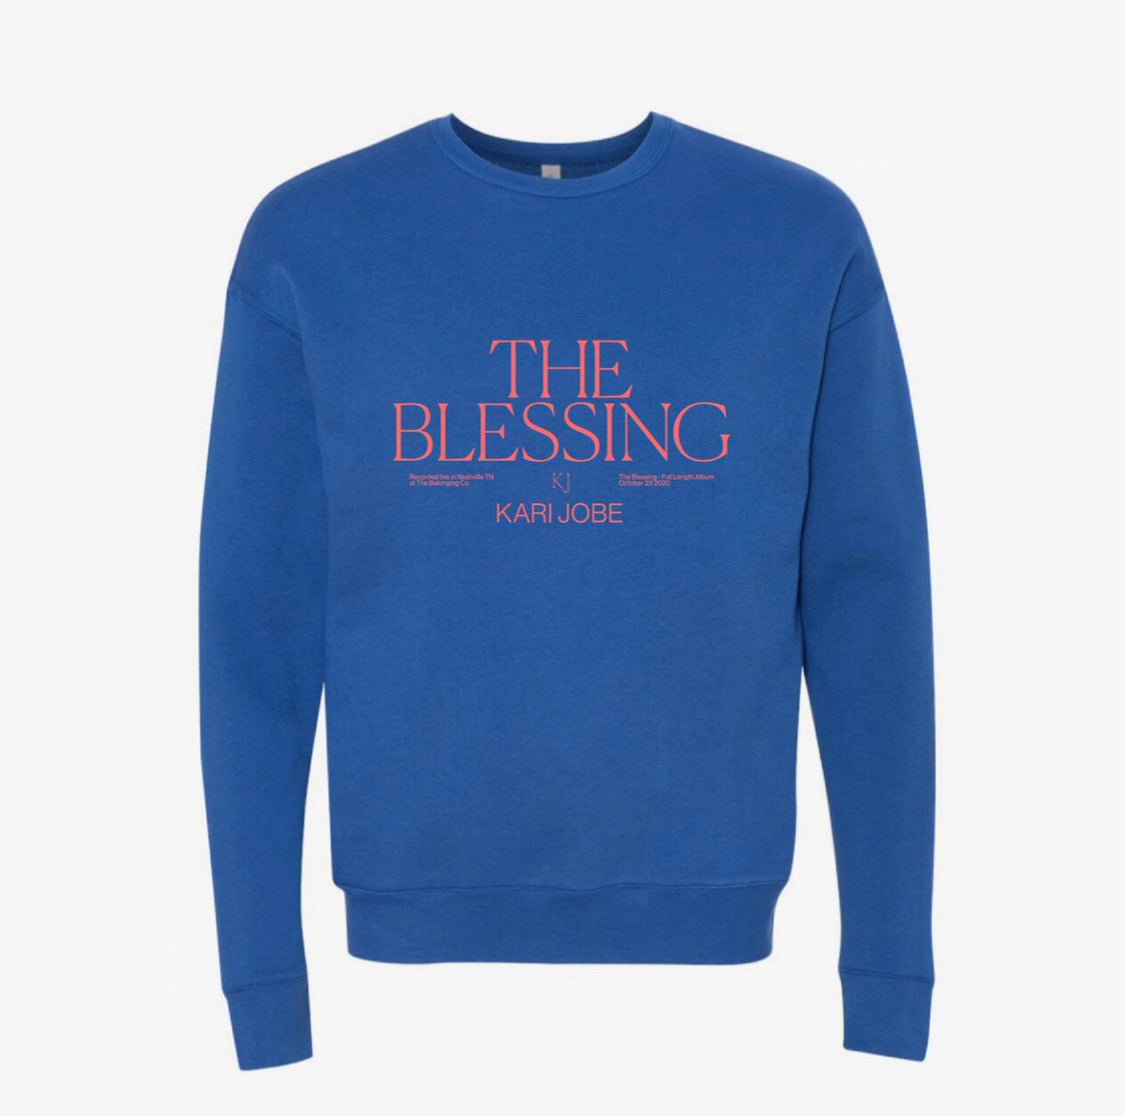 THE BLESSING CLASSIC SWEATSHIRT